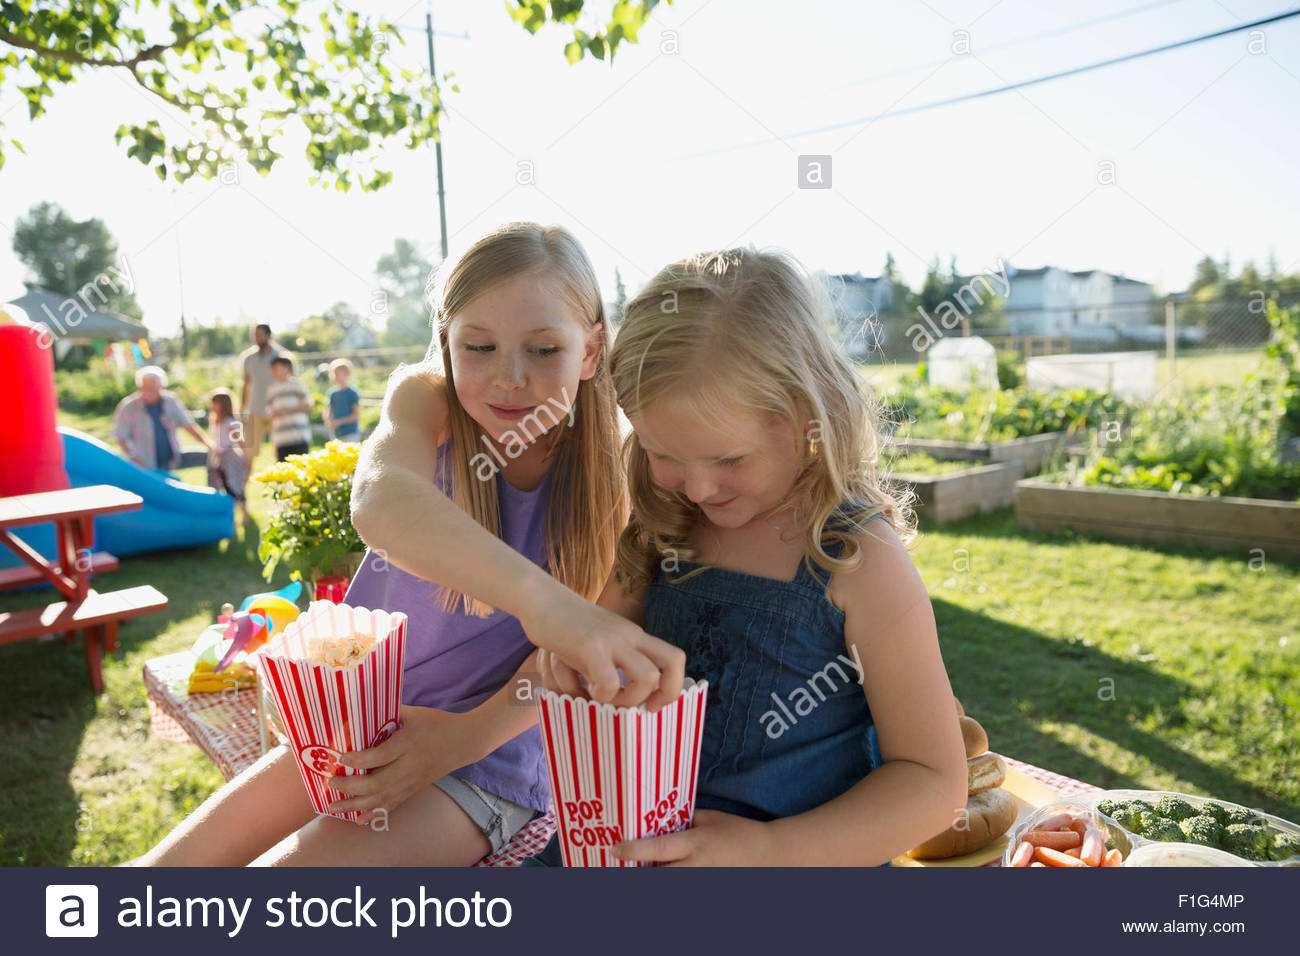 Sisters sharing popcorn in park - Stock Image